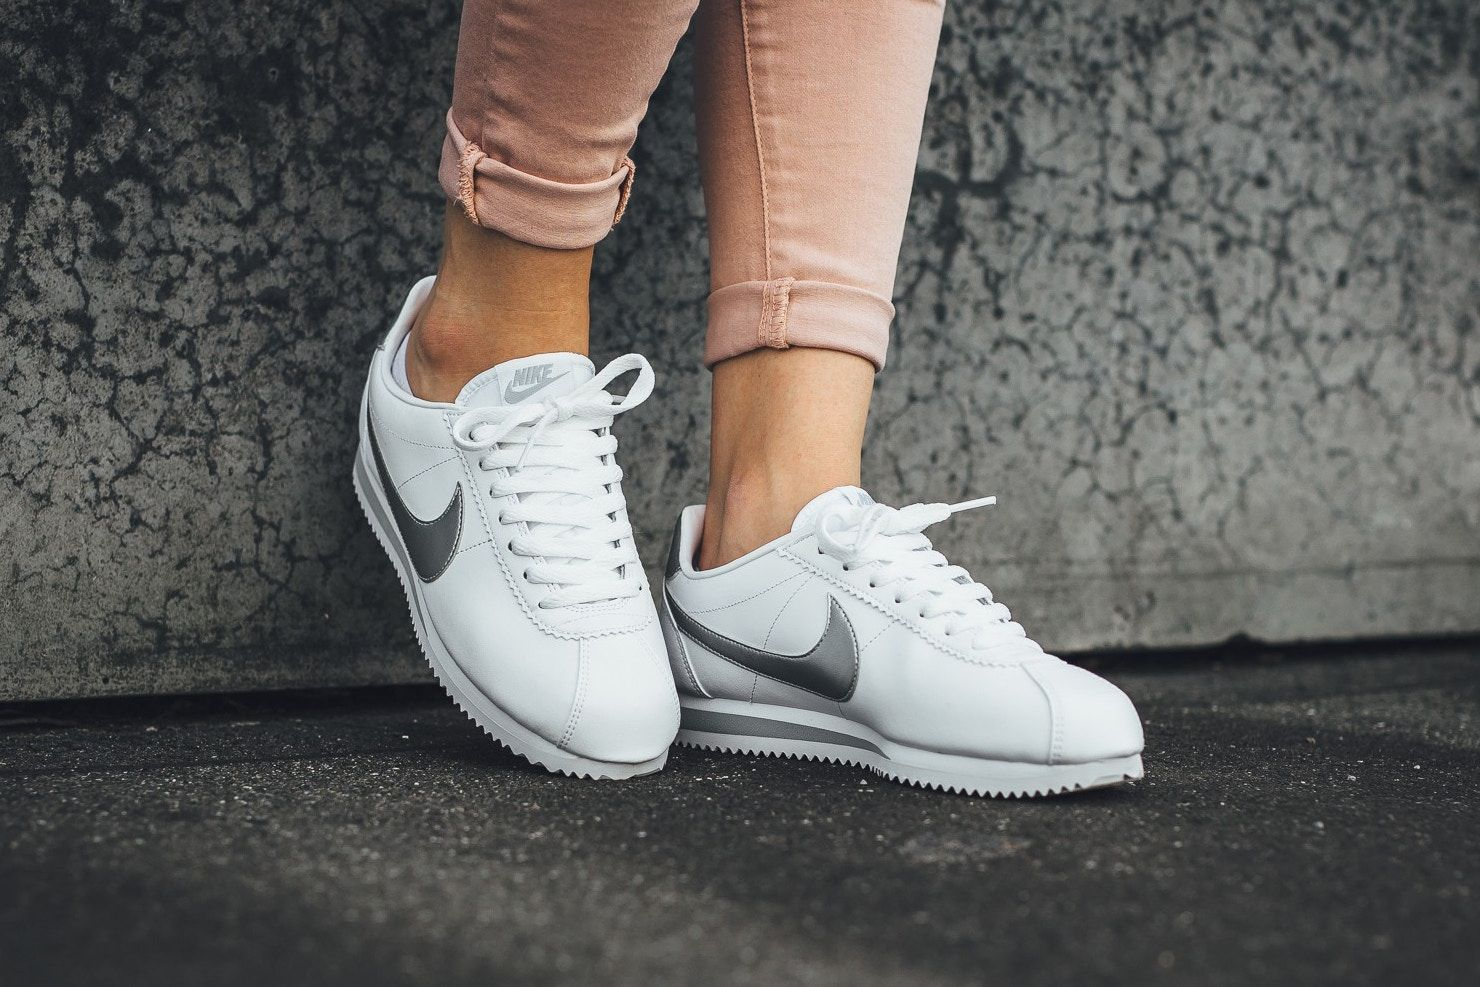 brand new 22cba 02abb A Silver Swoosh Shines on Nike's Classic Cortez Leather ...